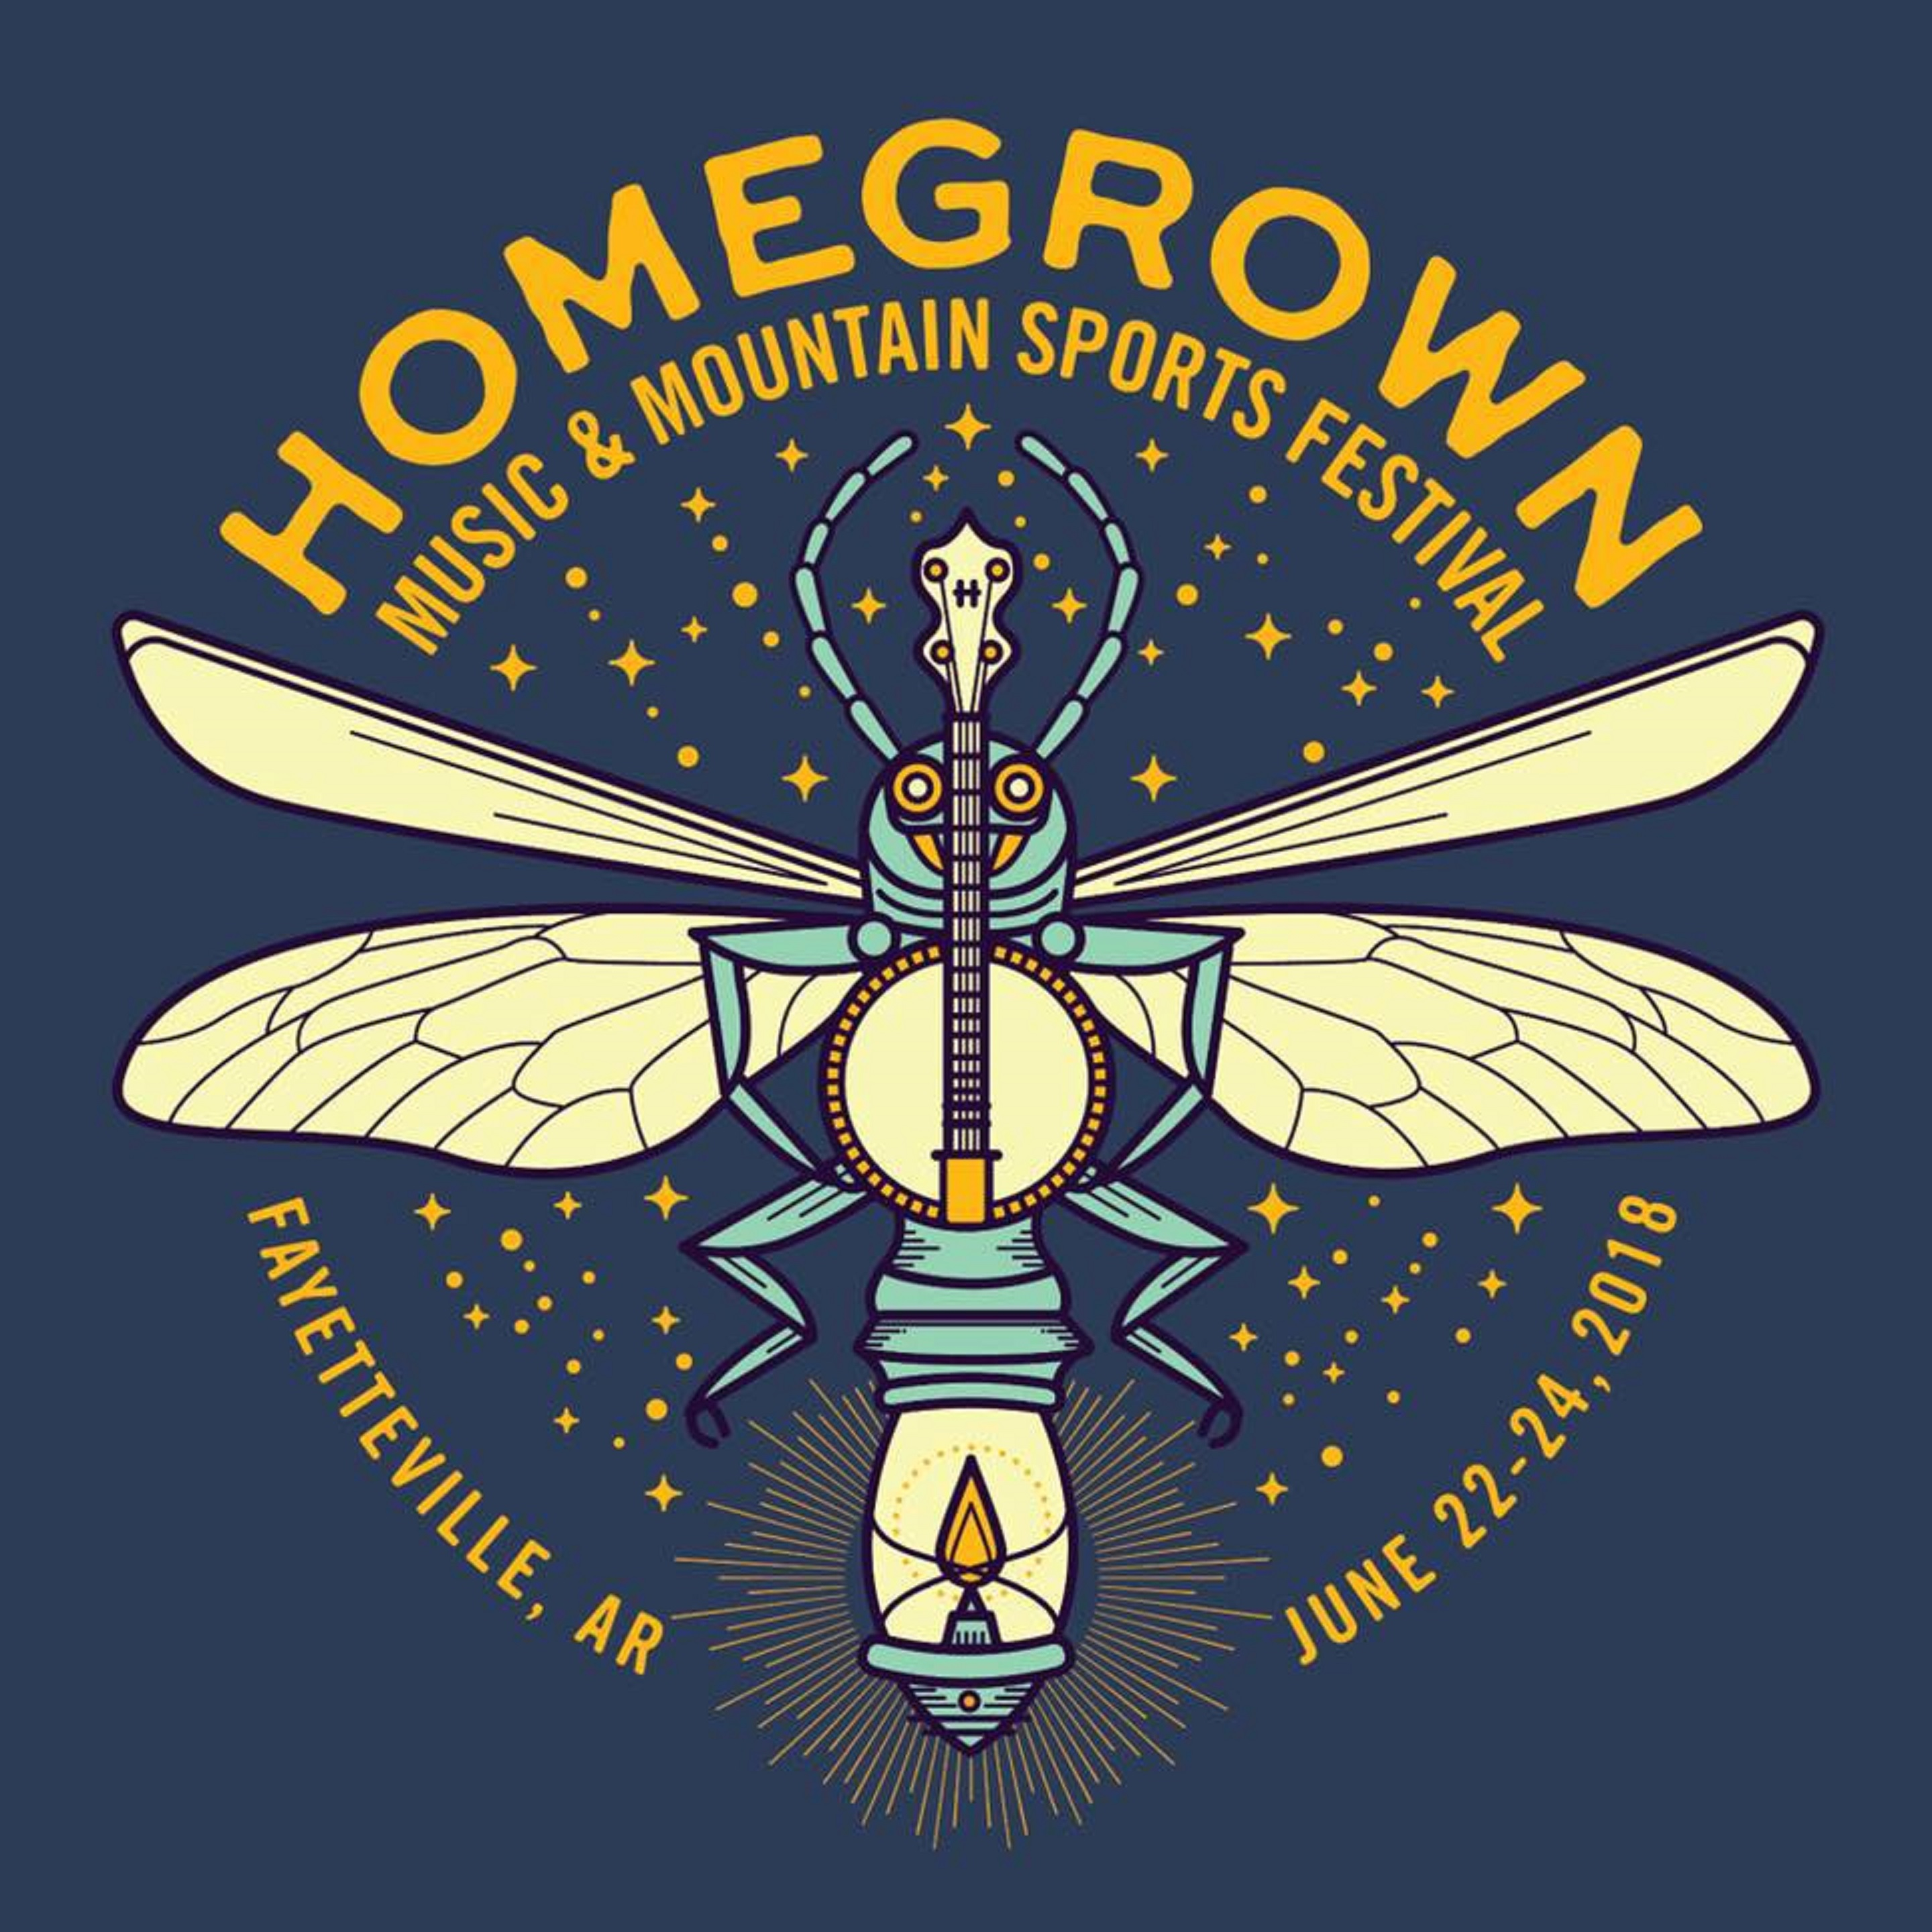 HOMEGROWN MUSIC & MOUNTAIN SPORTS FESTIVAL